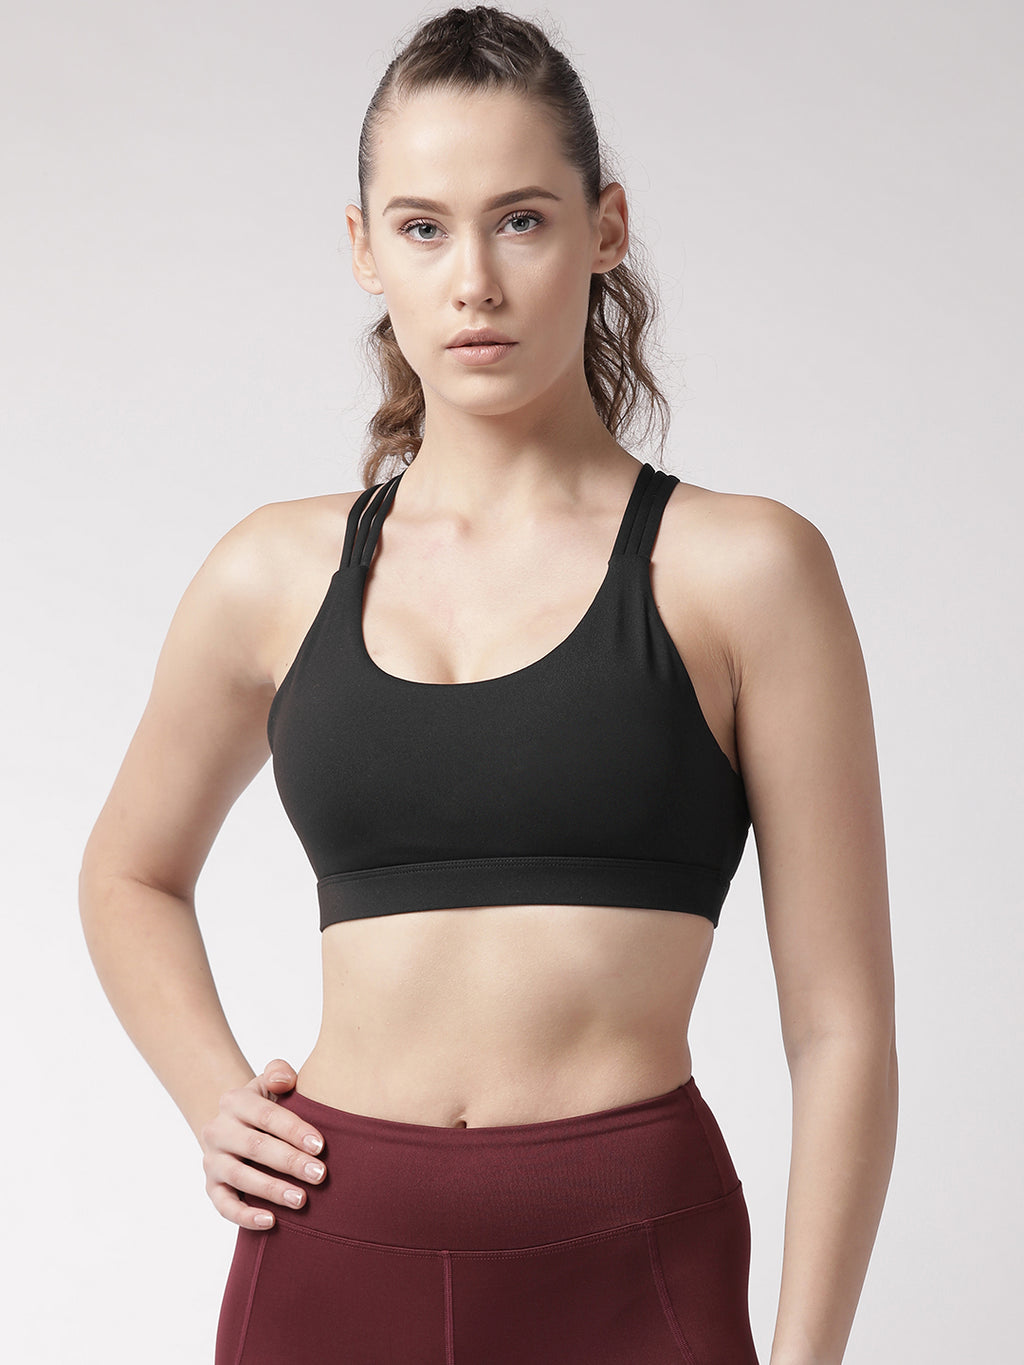 Fitkin Black Solid Non-Wired Lightly Padded Sports Bra